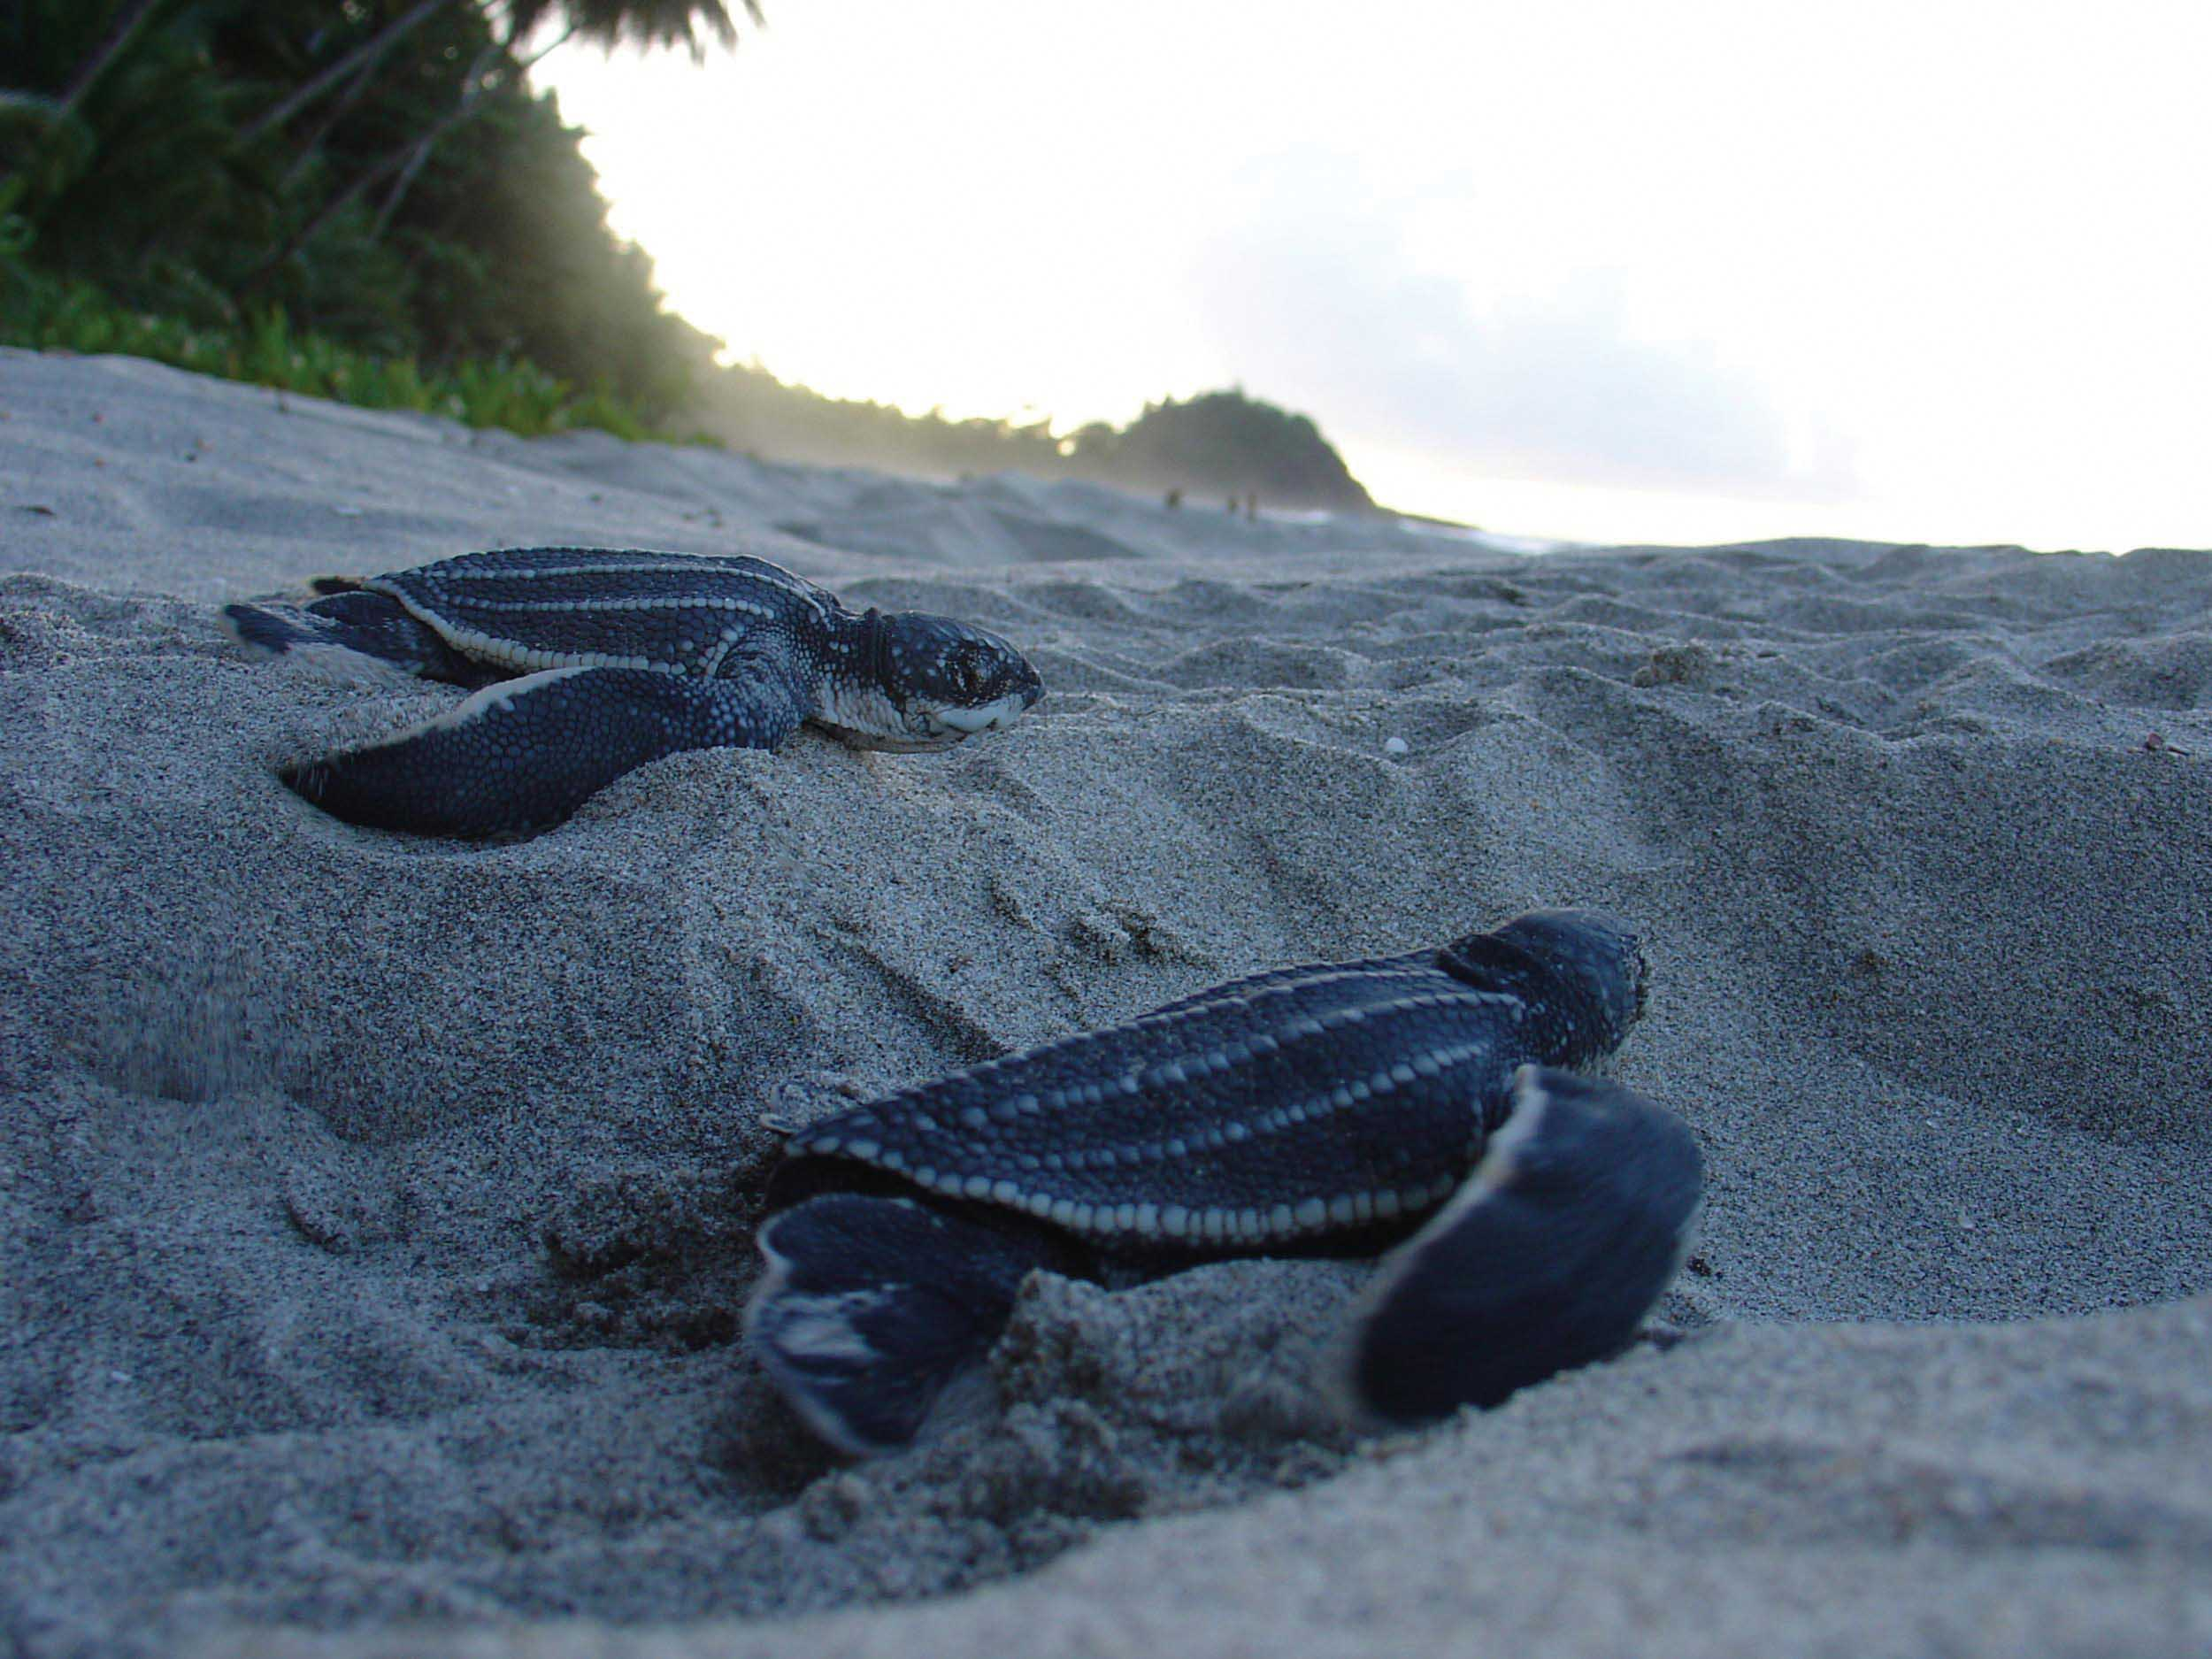 Leatherback hatchlings head to sea. © SUZANNE LIVINGSTONE / UNIVERSITY OF GLASGOW